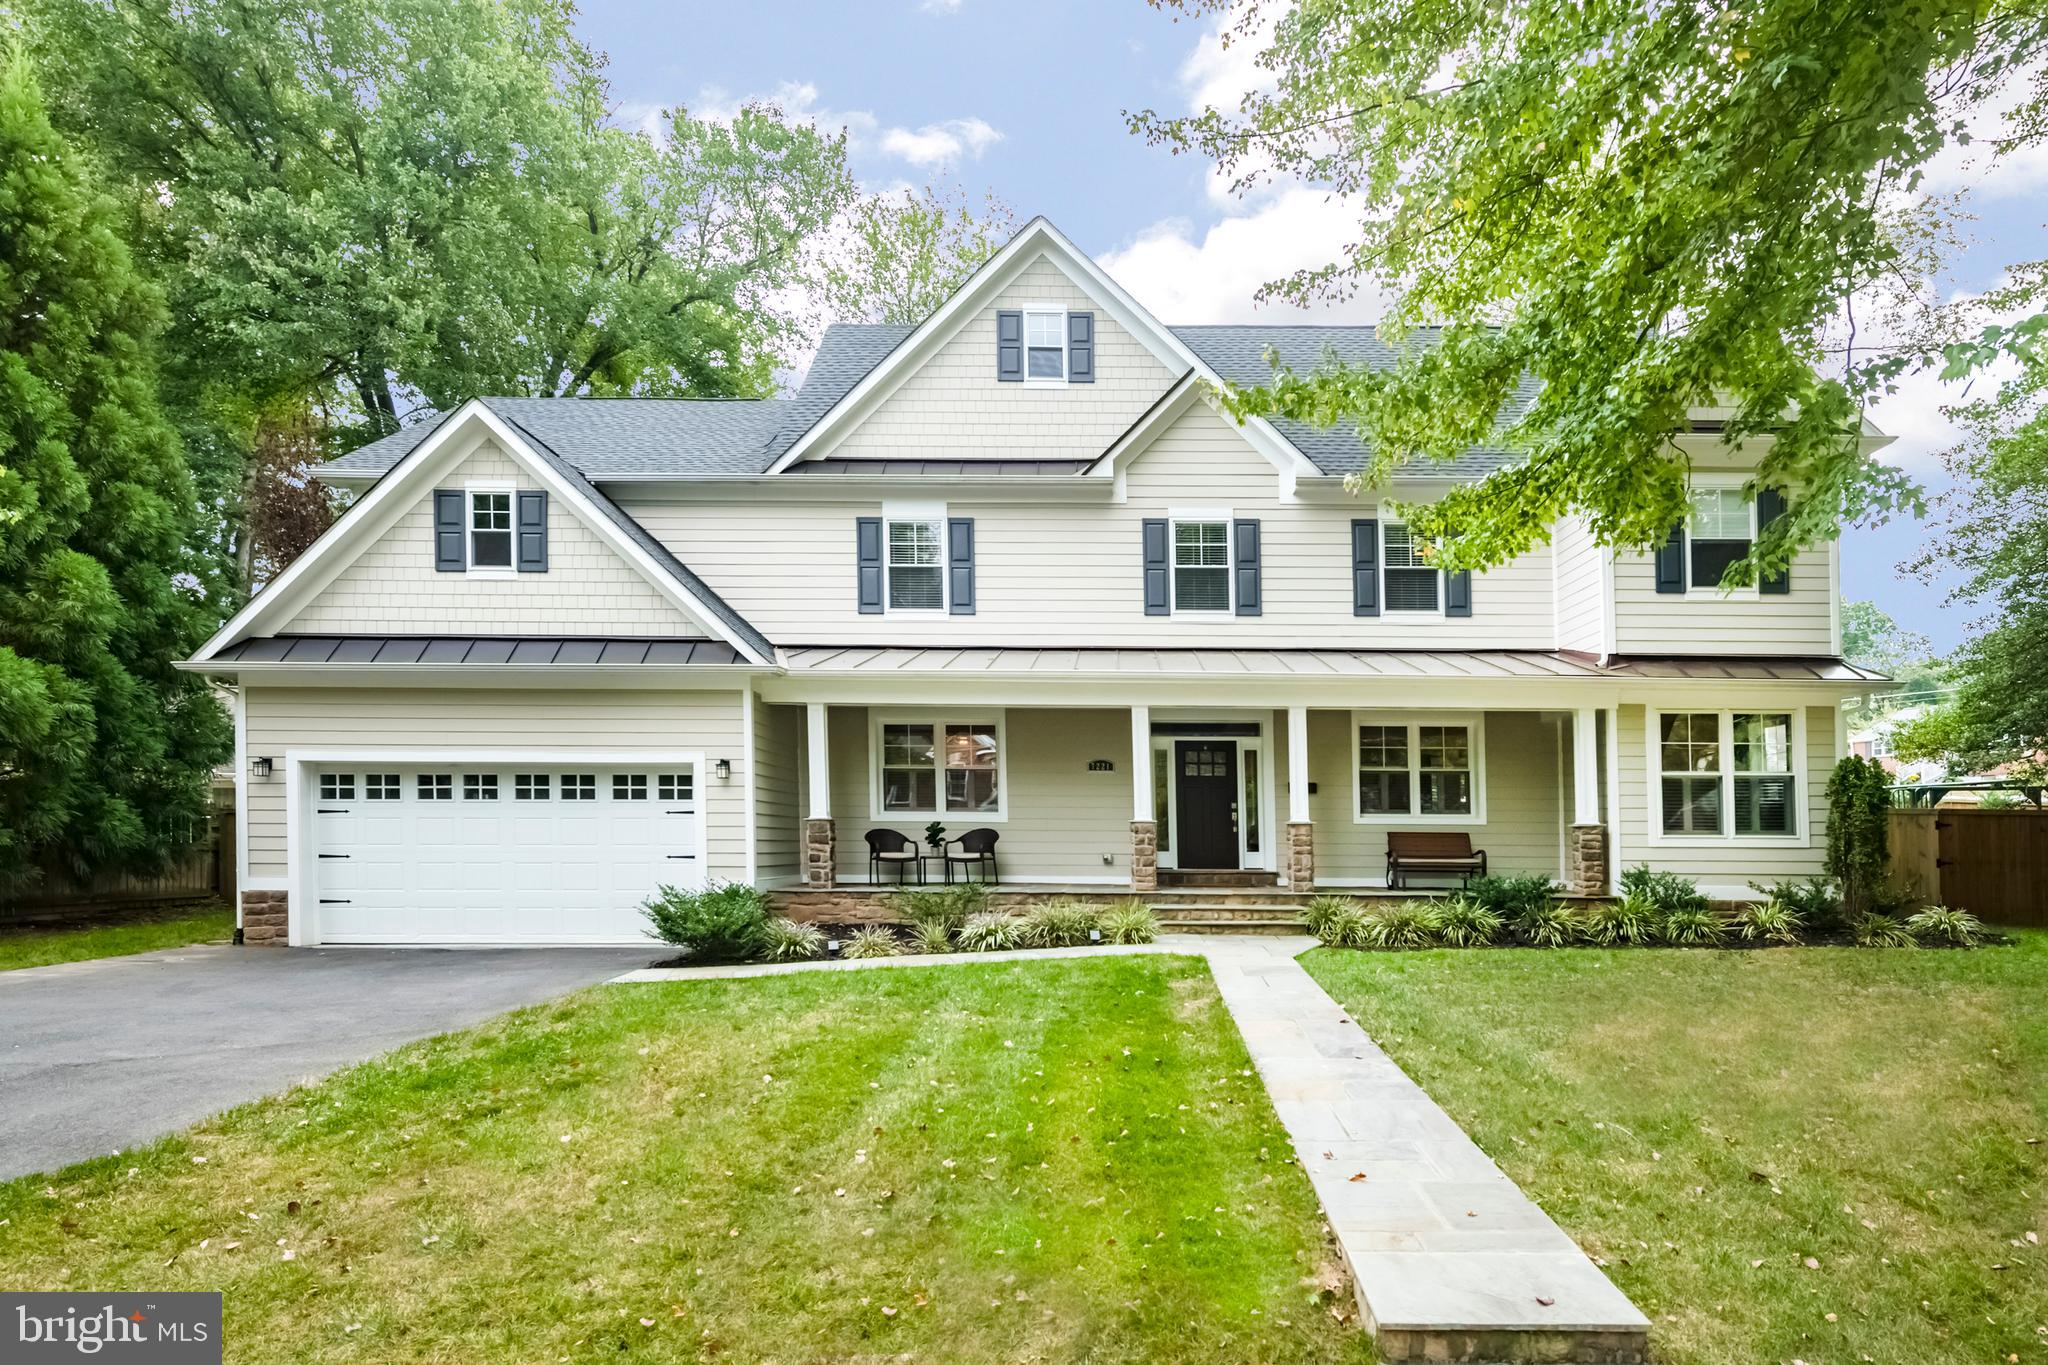 7221 ARTHUR DRIVE, FALLS CHURCH, VA 22046